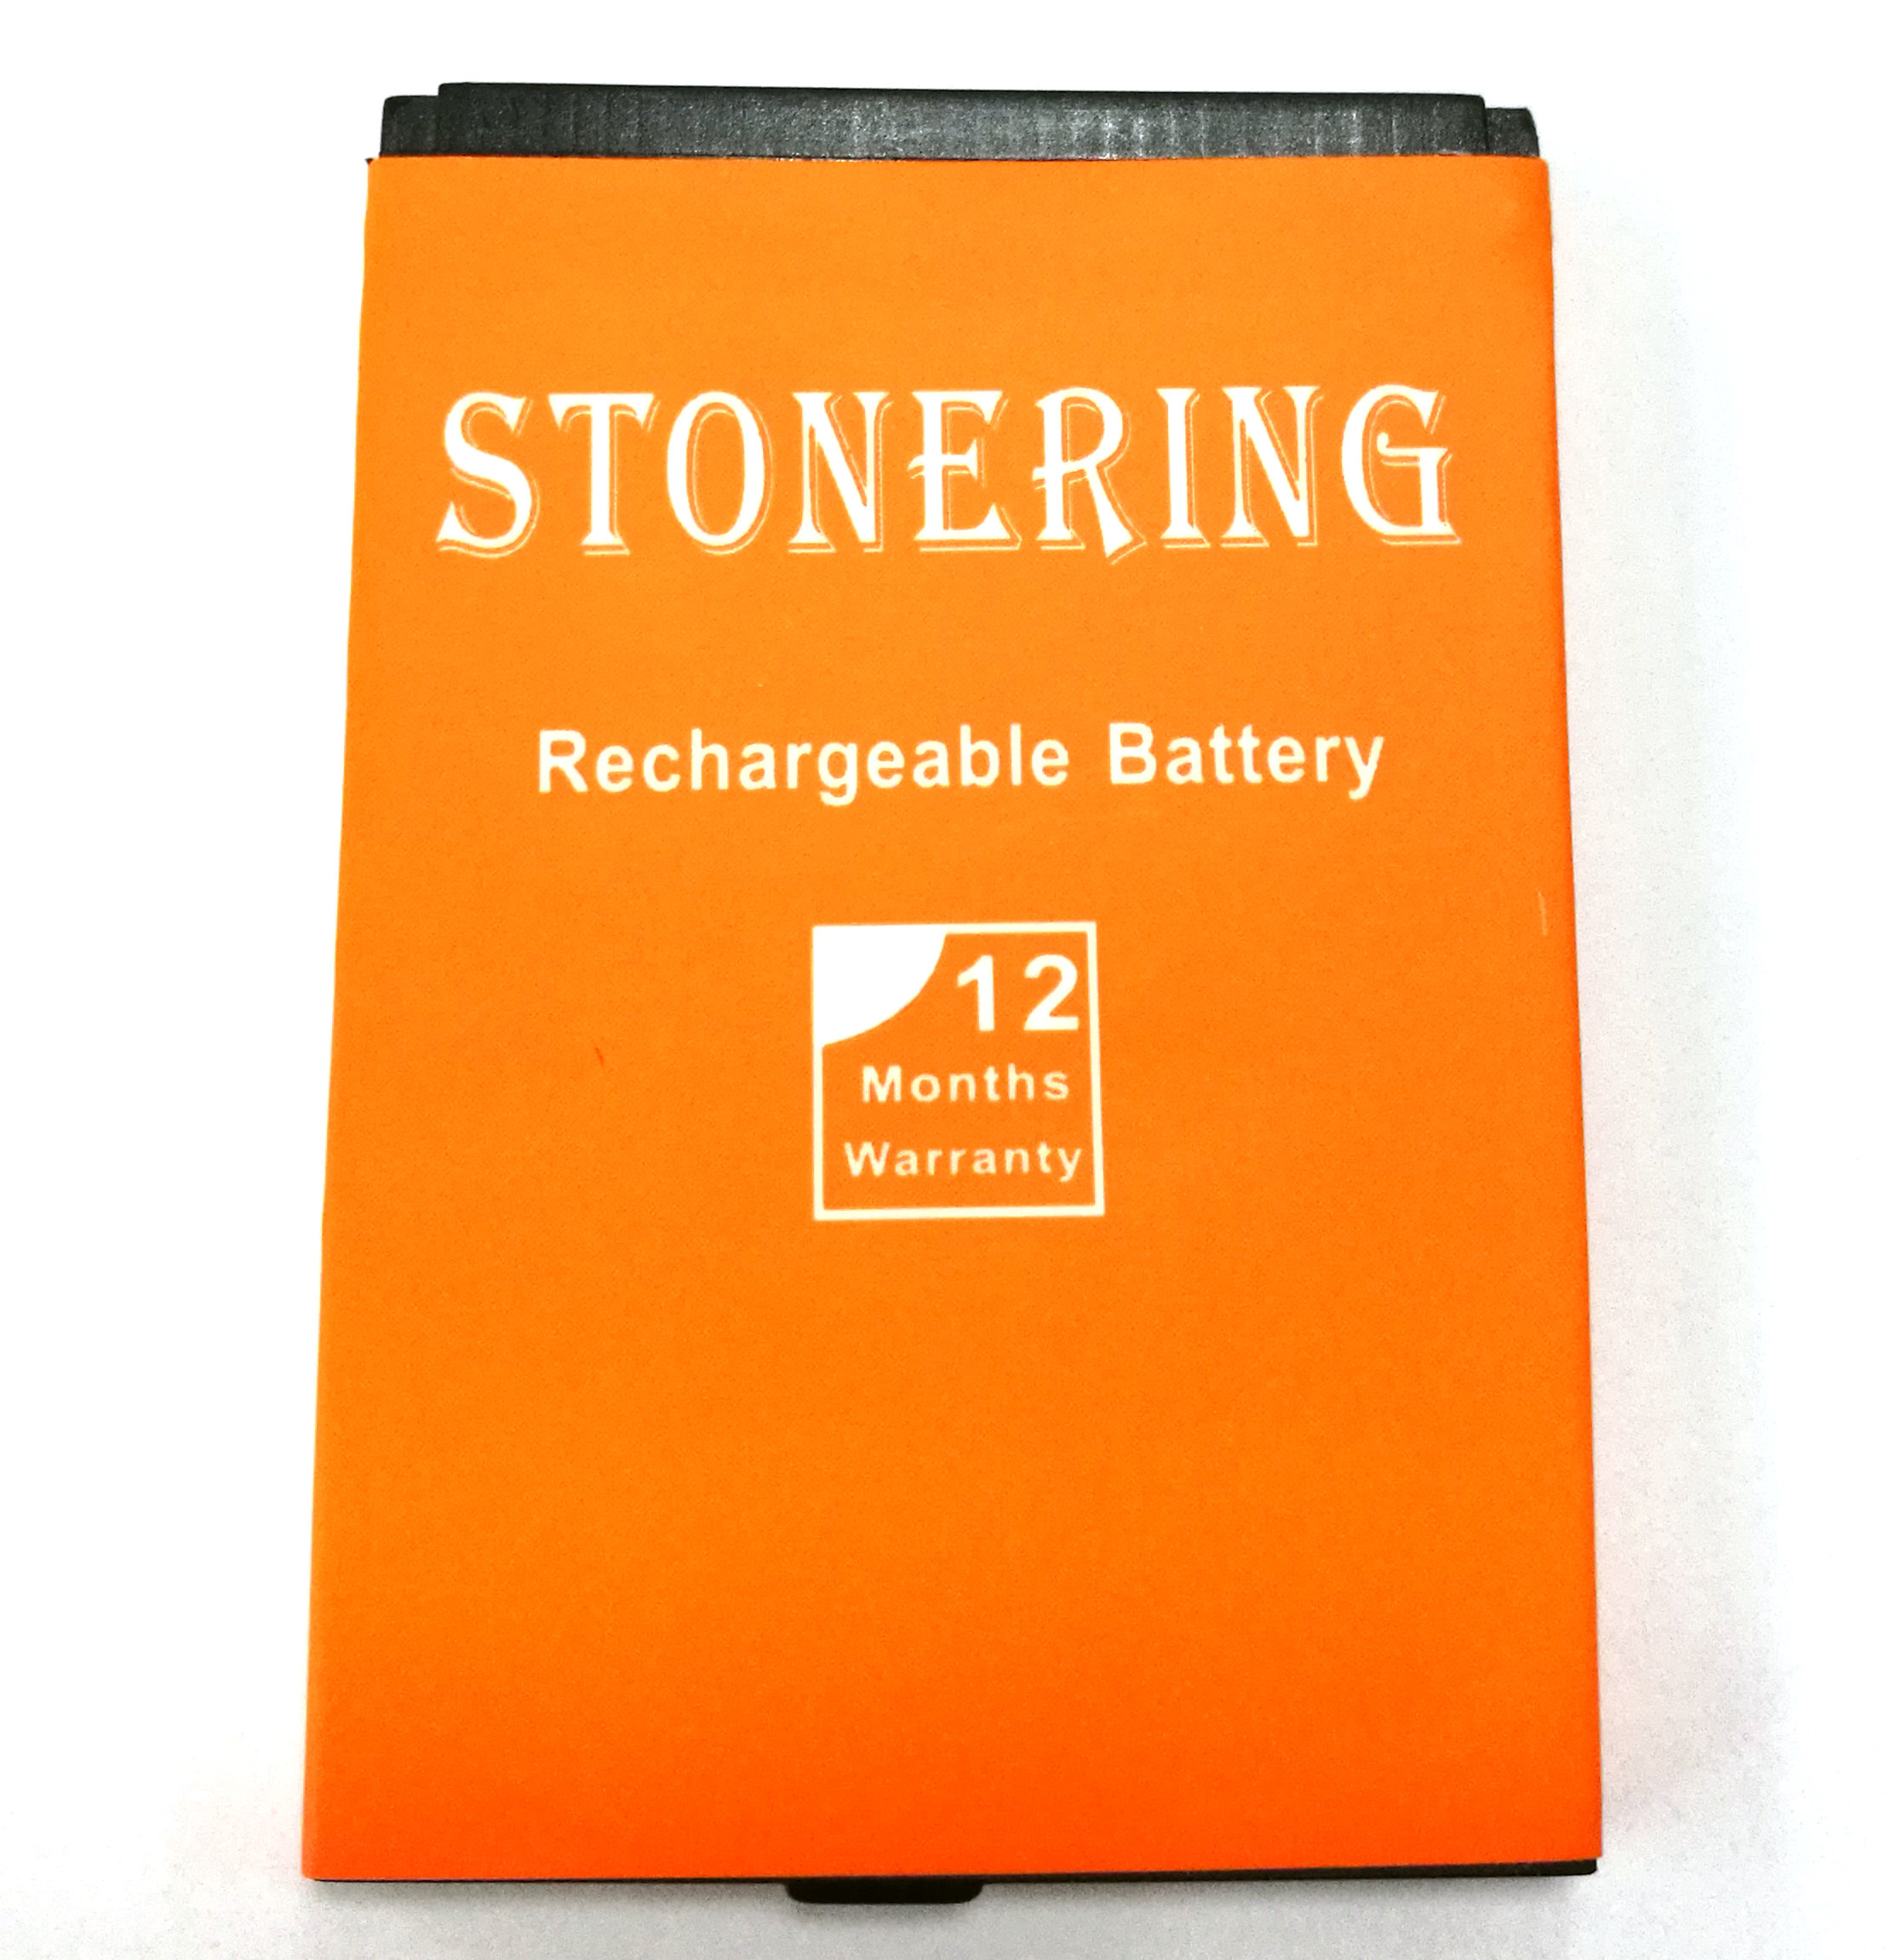 STONERING 1000mah A20VDP/3ZP Battery For PHILIPS X332 F533 K700 X703 E320 Smartphone